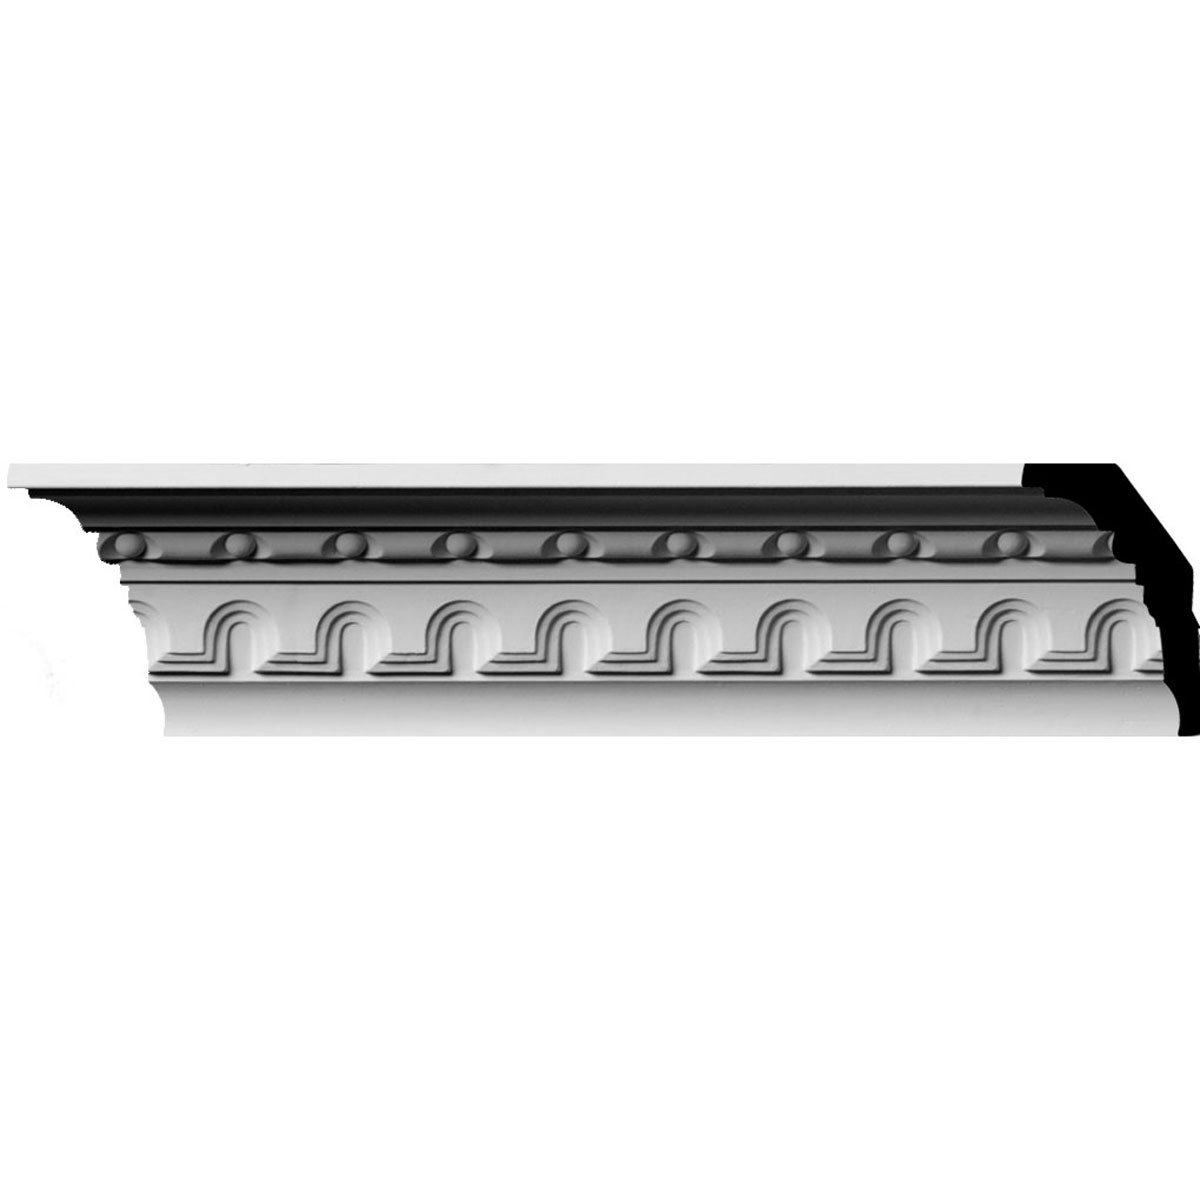 3 5/8'' H x 2 1/4'' P x 4 1/4'' F x 94 1/2'' L, (1 3/8'' Repeat) Heaton Crown Moulding (2-Pack)